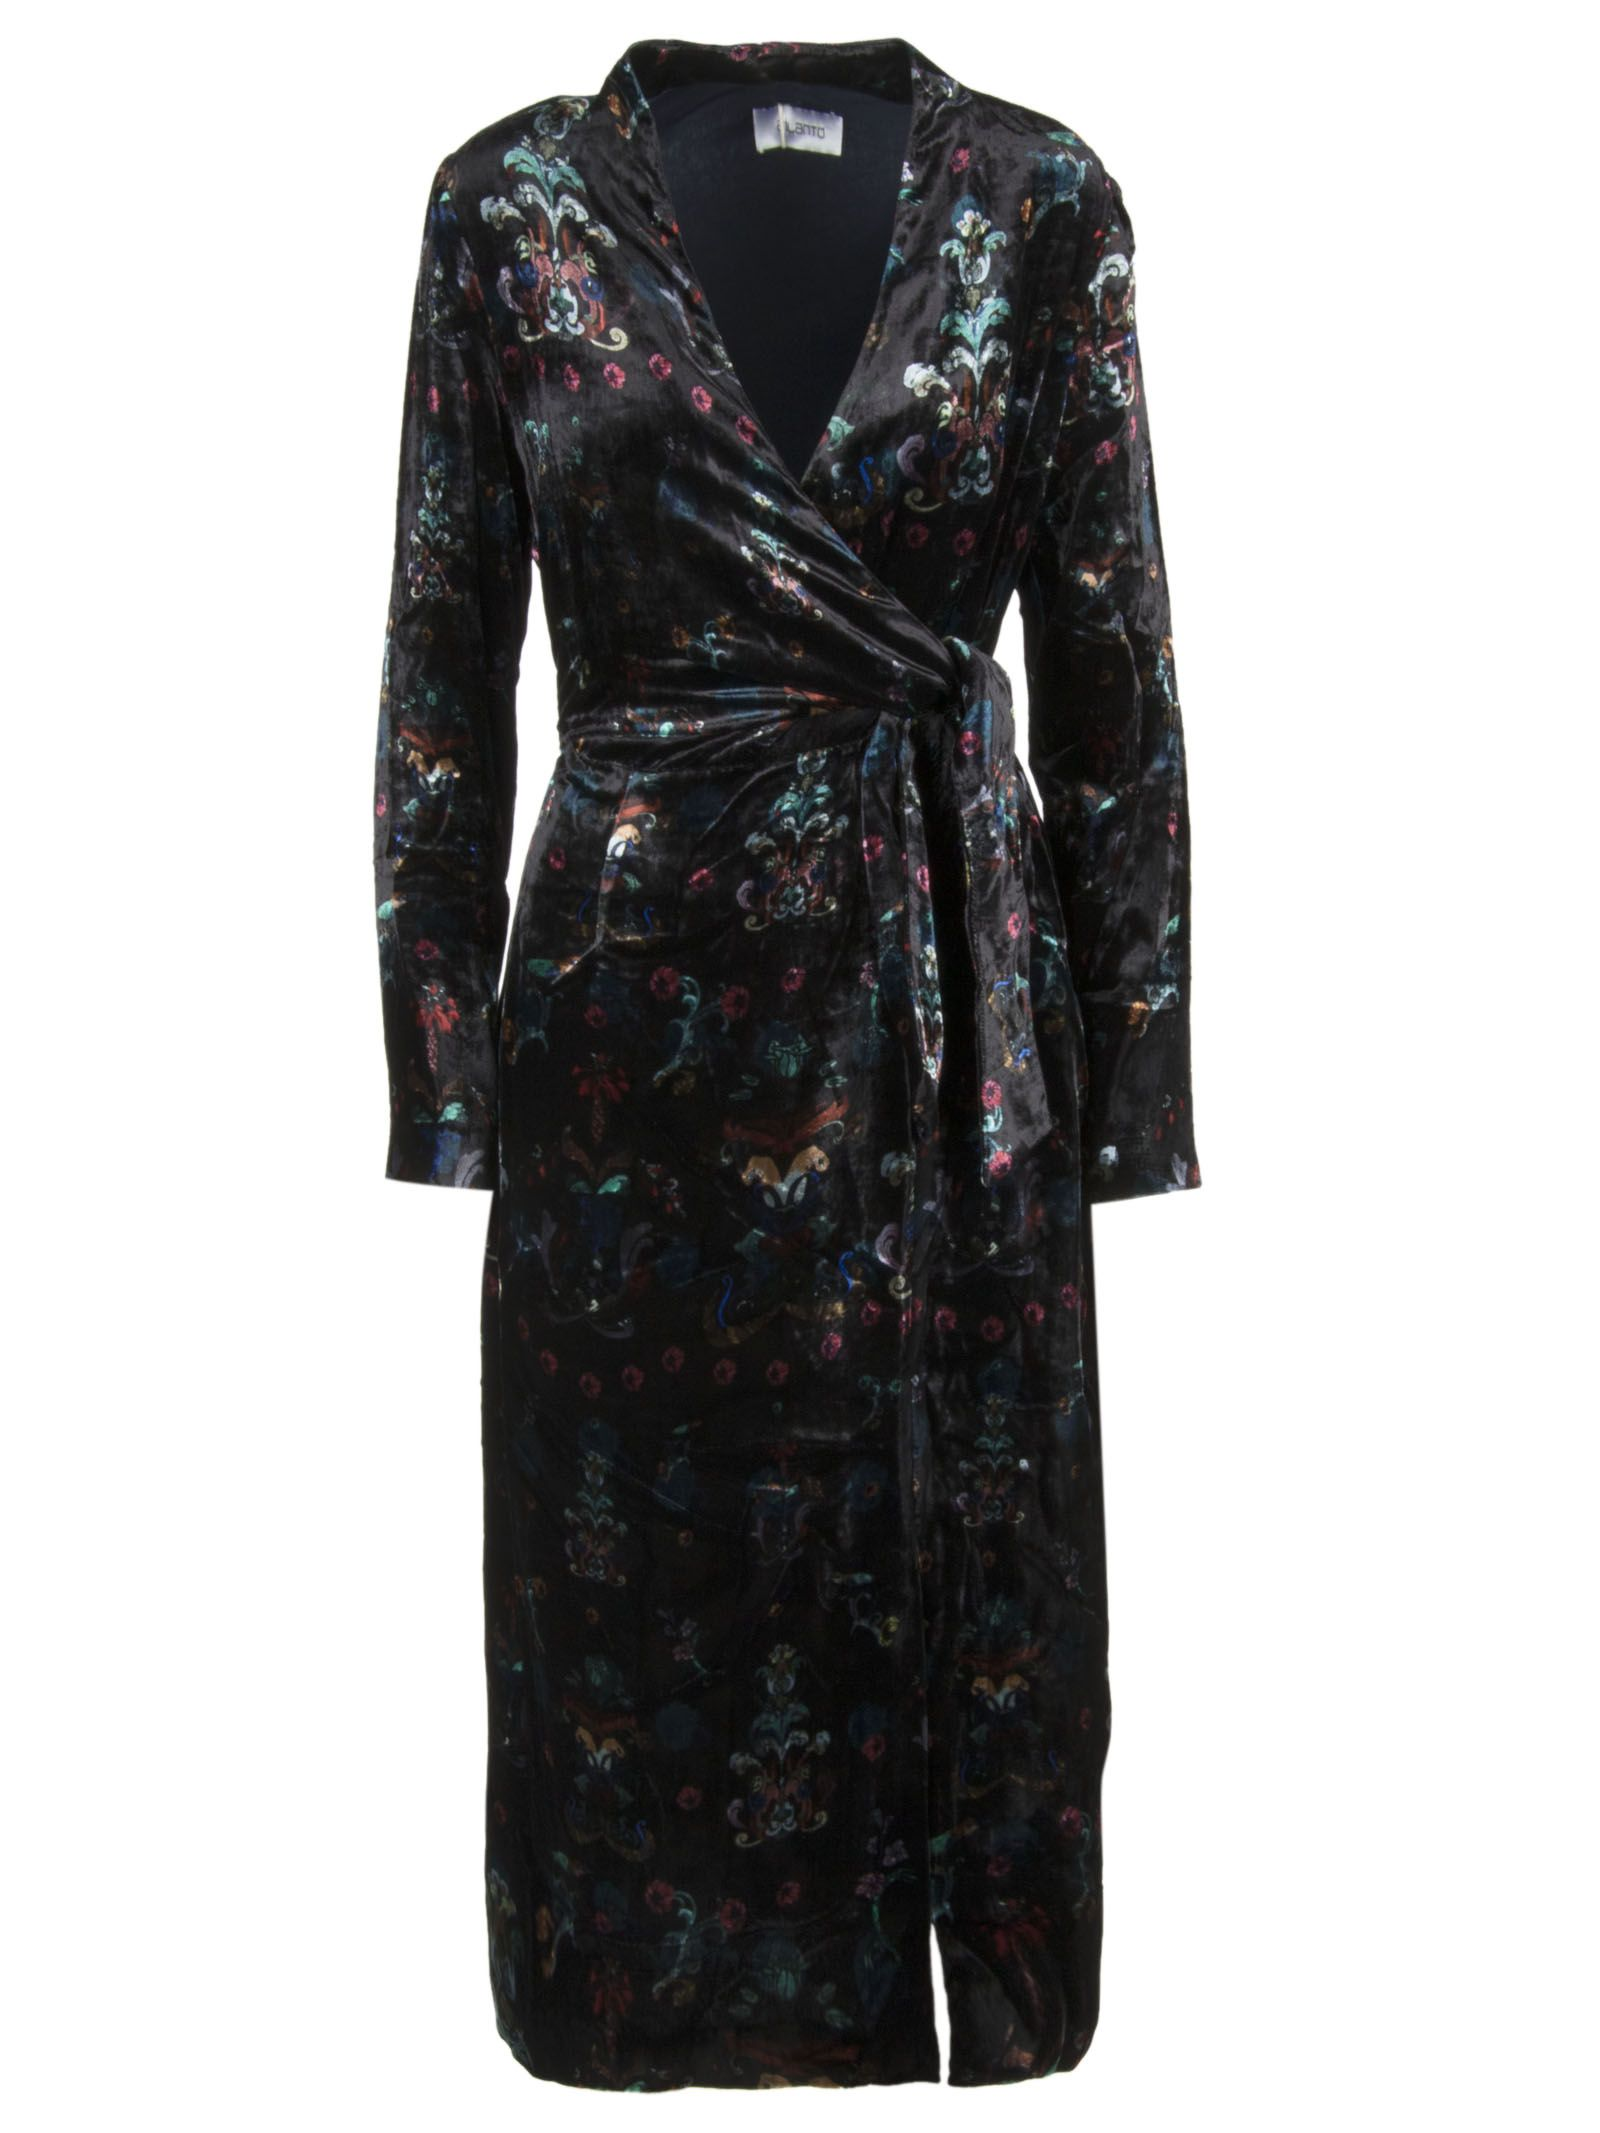 AILANTO Floral Dress in Black